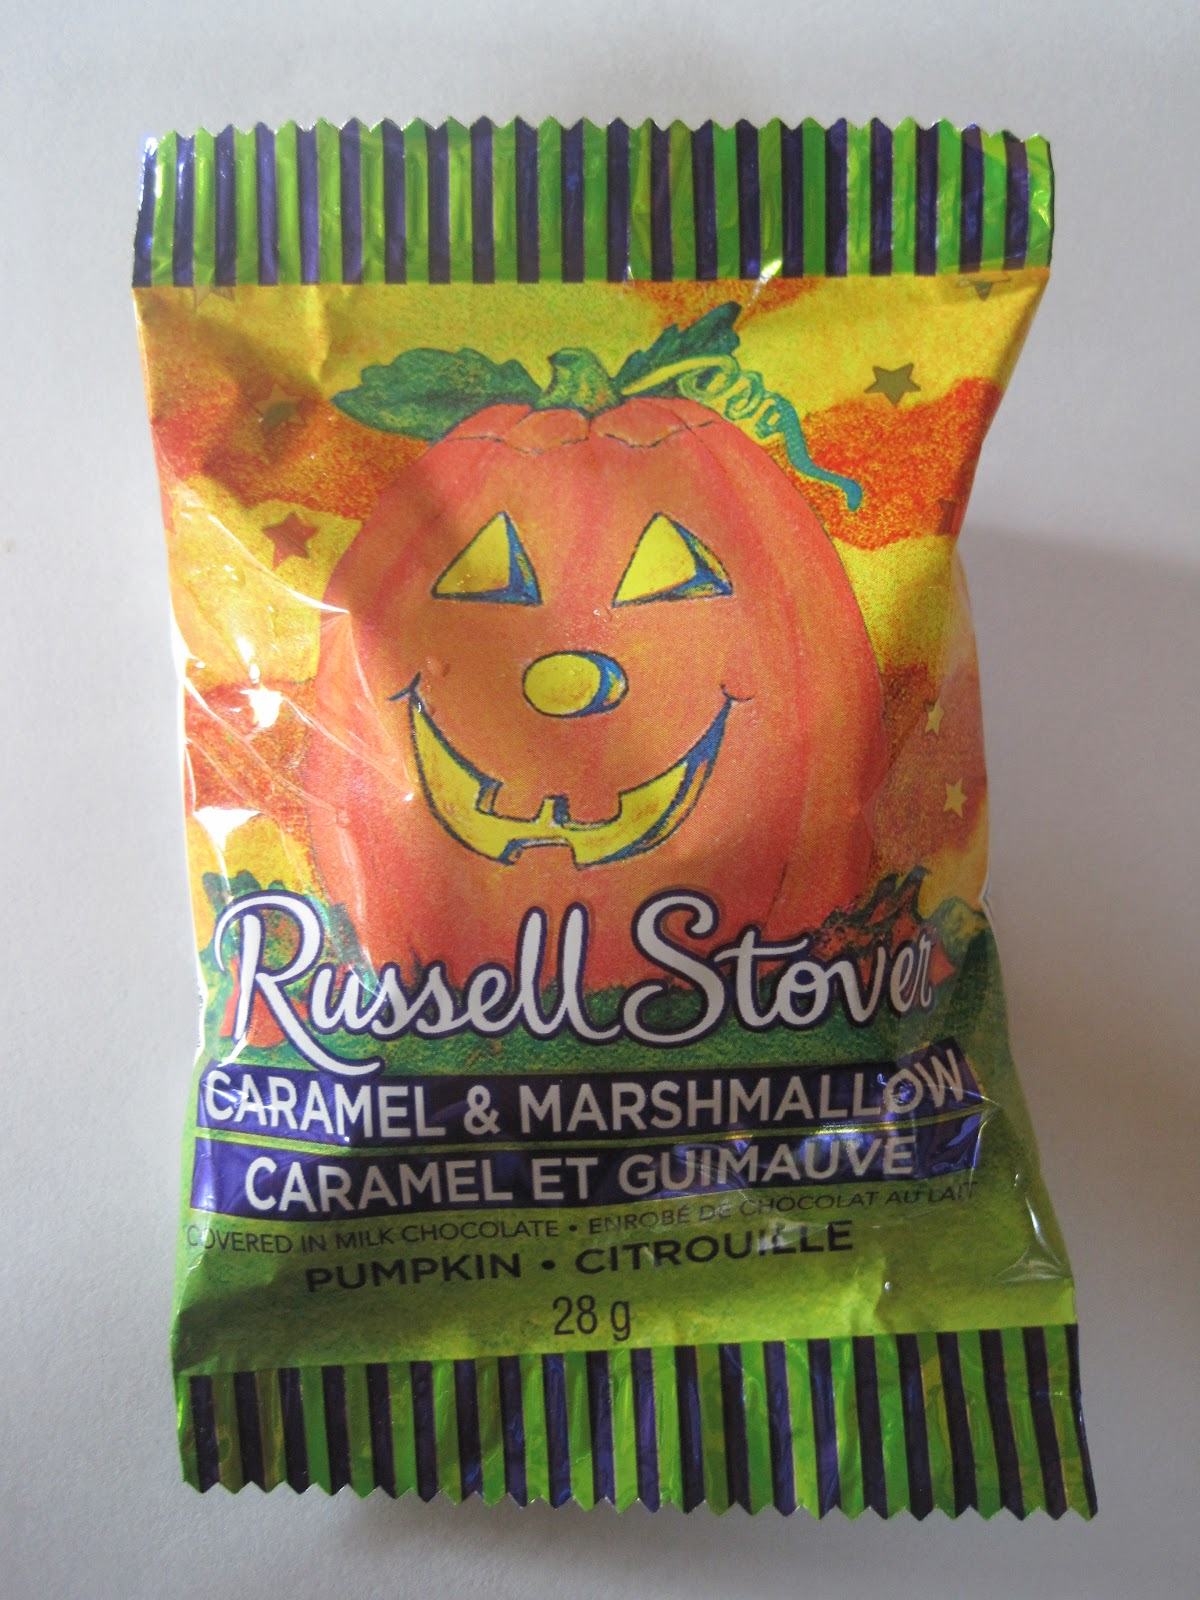 walking the candy aisle: russell stover caramel & marshmallow